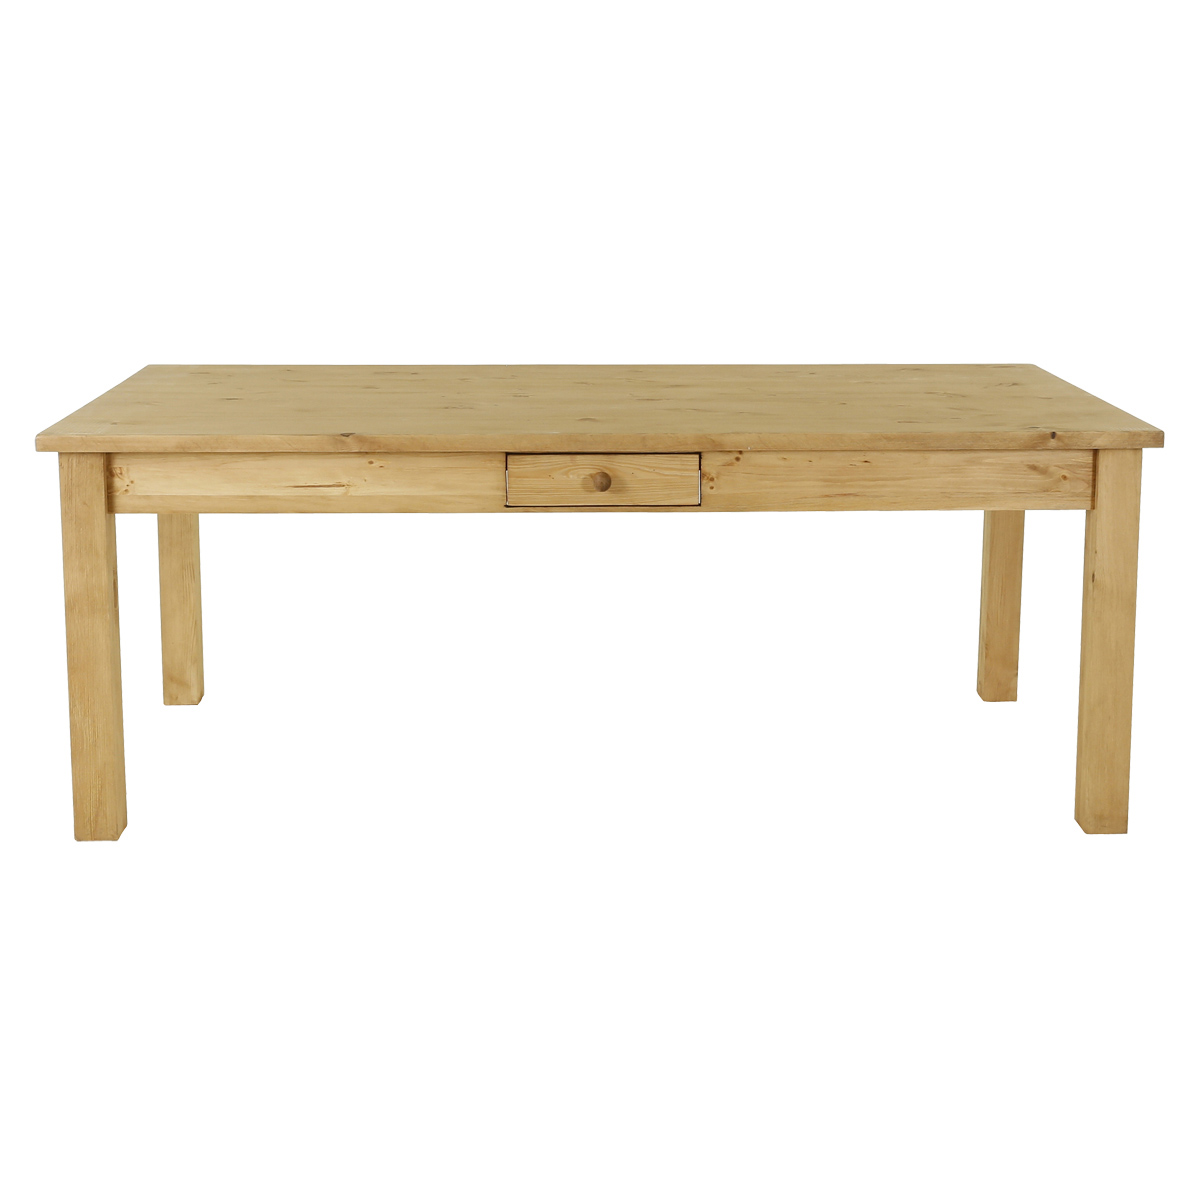 maison du monde Table de ferme + tiroir 200x100 cm allonges en option